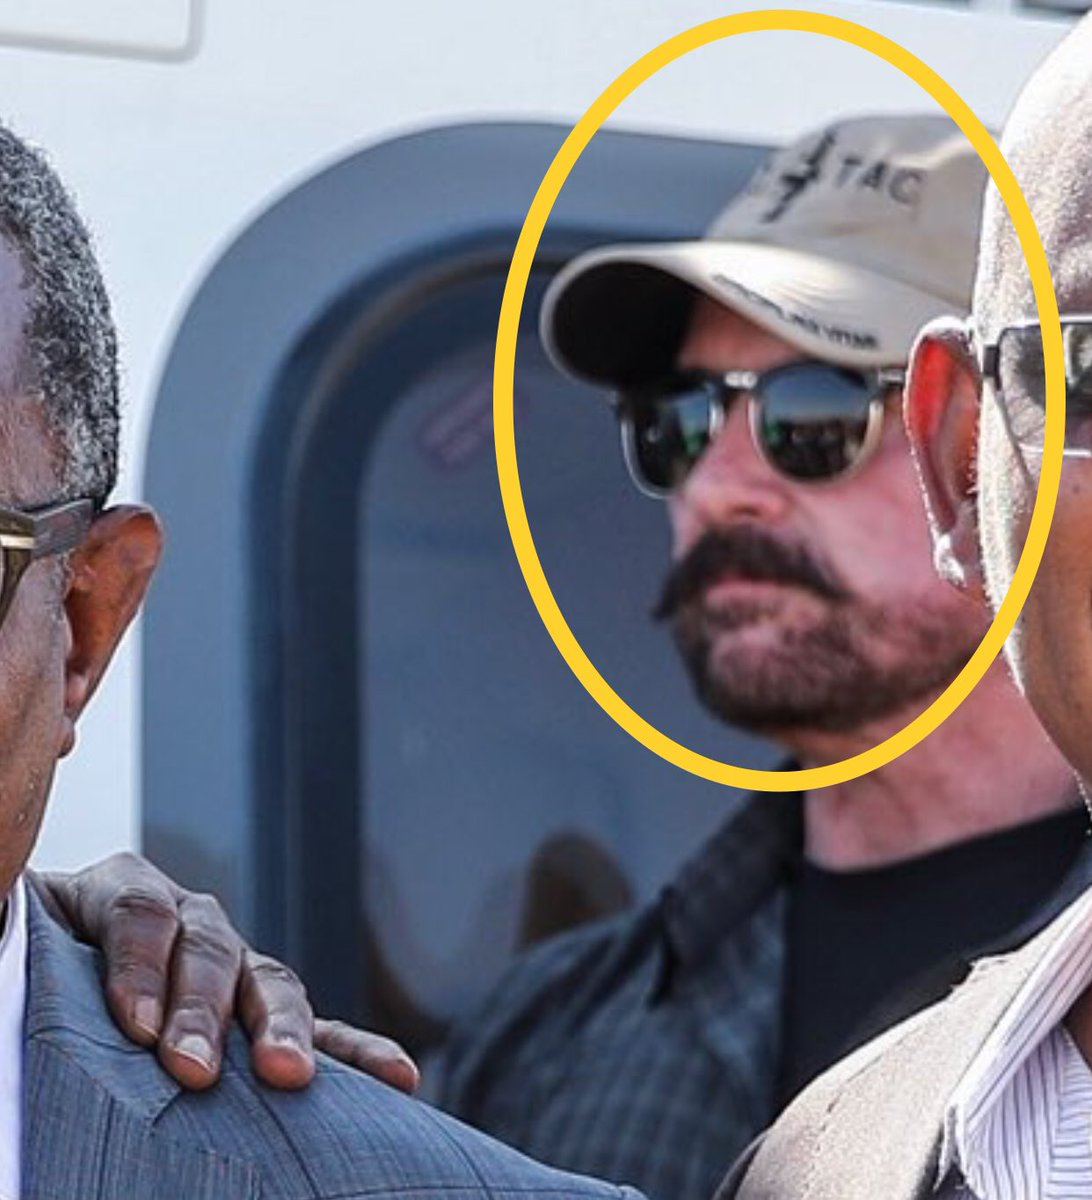 I am sharing this not for the absurdity of the war but for you to notice the White security detail. Look at his cap 🧢. My guess is one of Erik Prince's security contractor.   Erik Prince has been providing security and training to Eritrea/Ethiopia on behalf of @MohamedBinZayed.